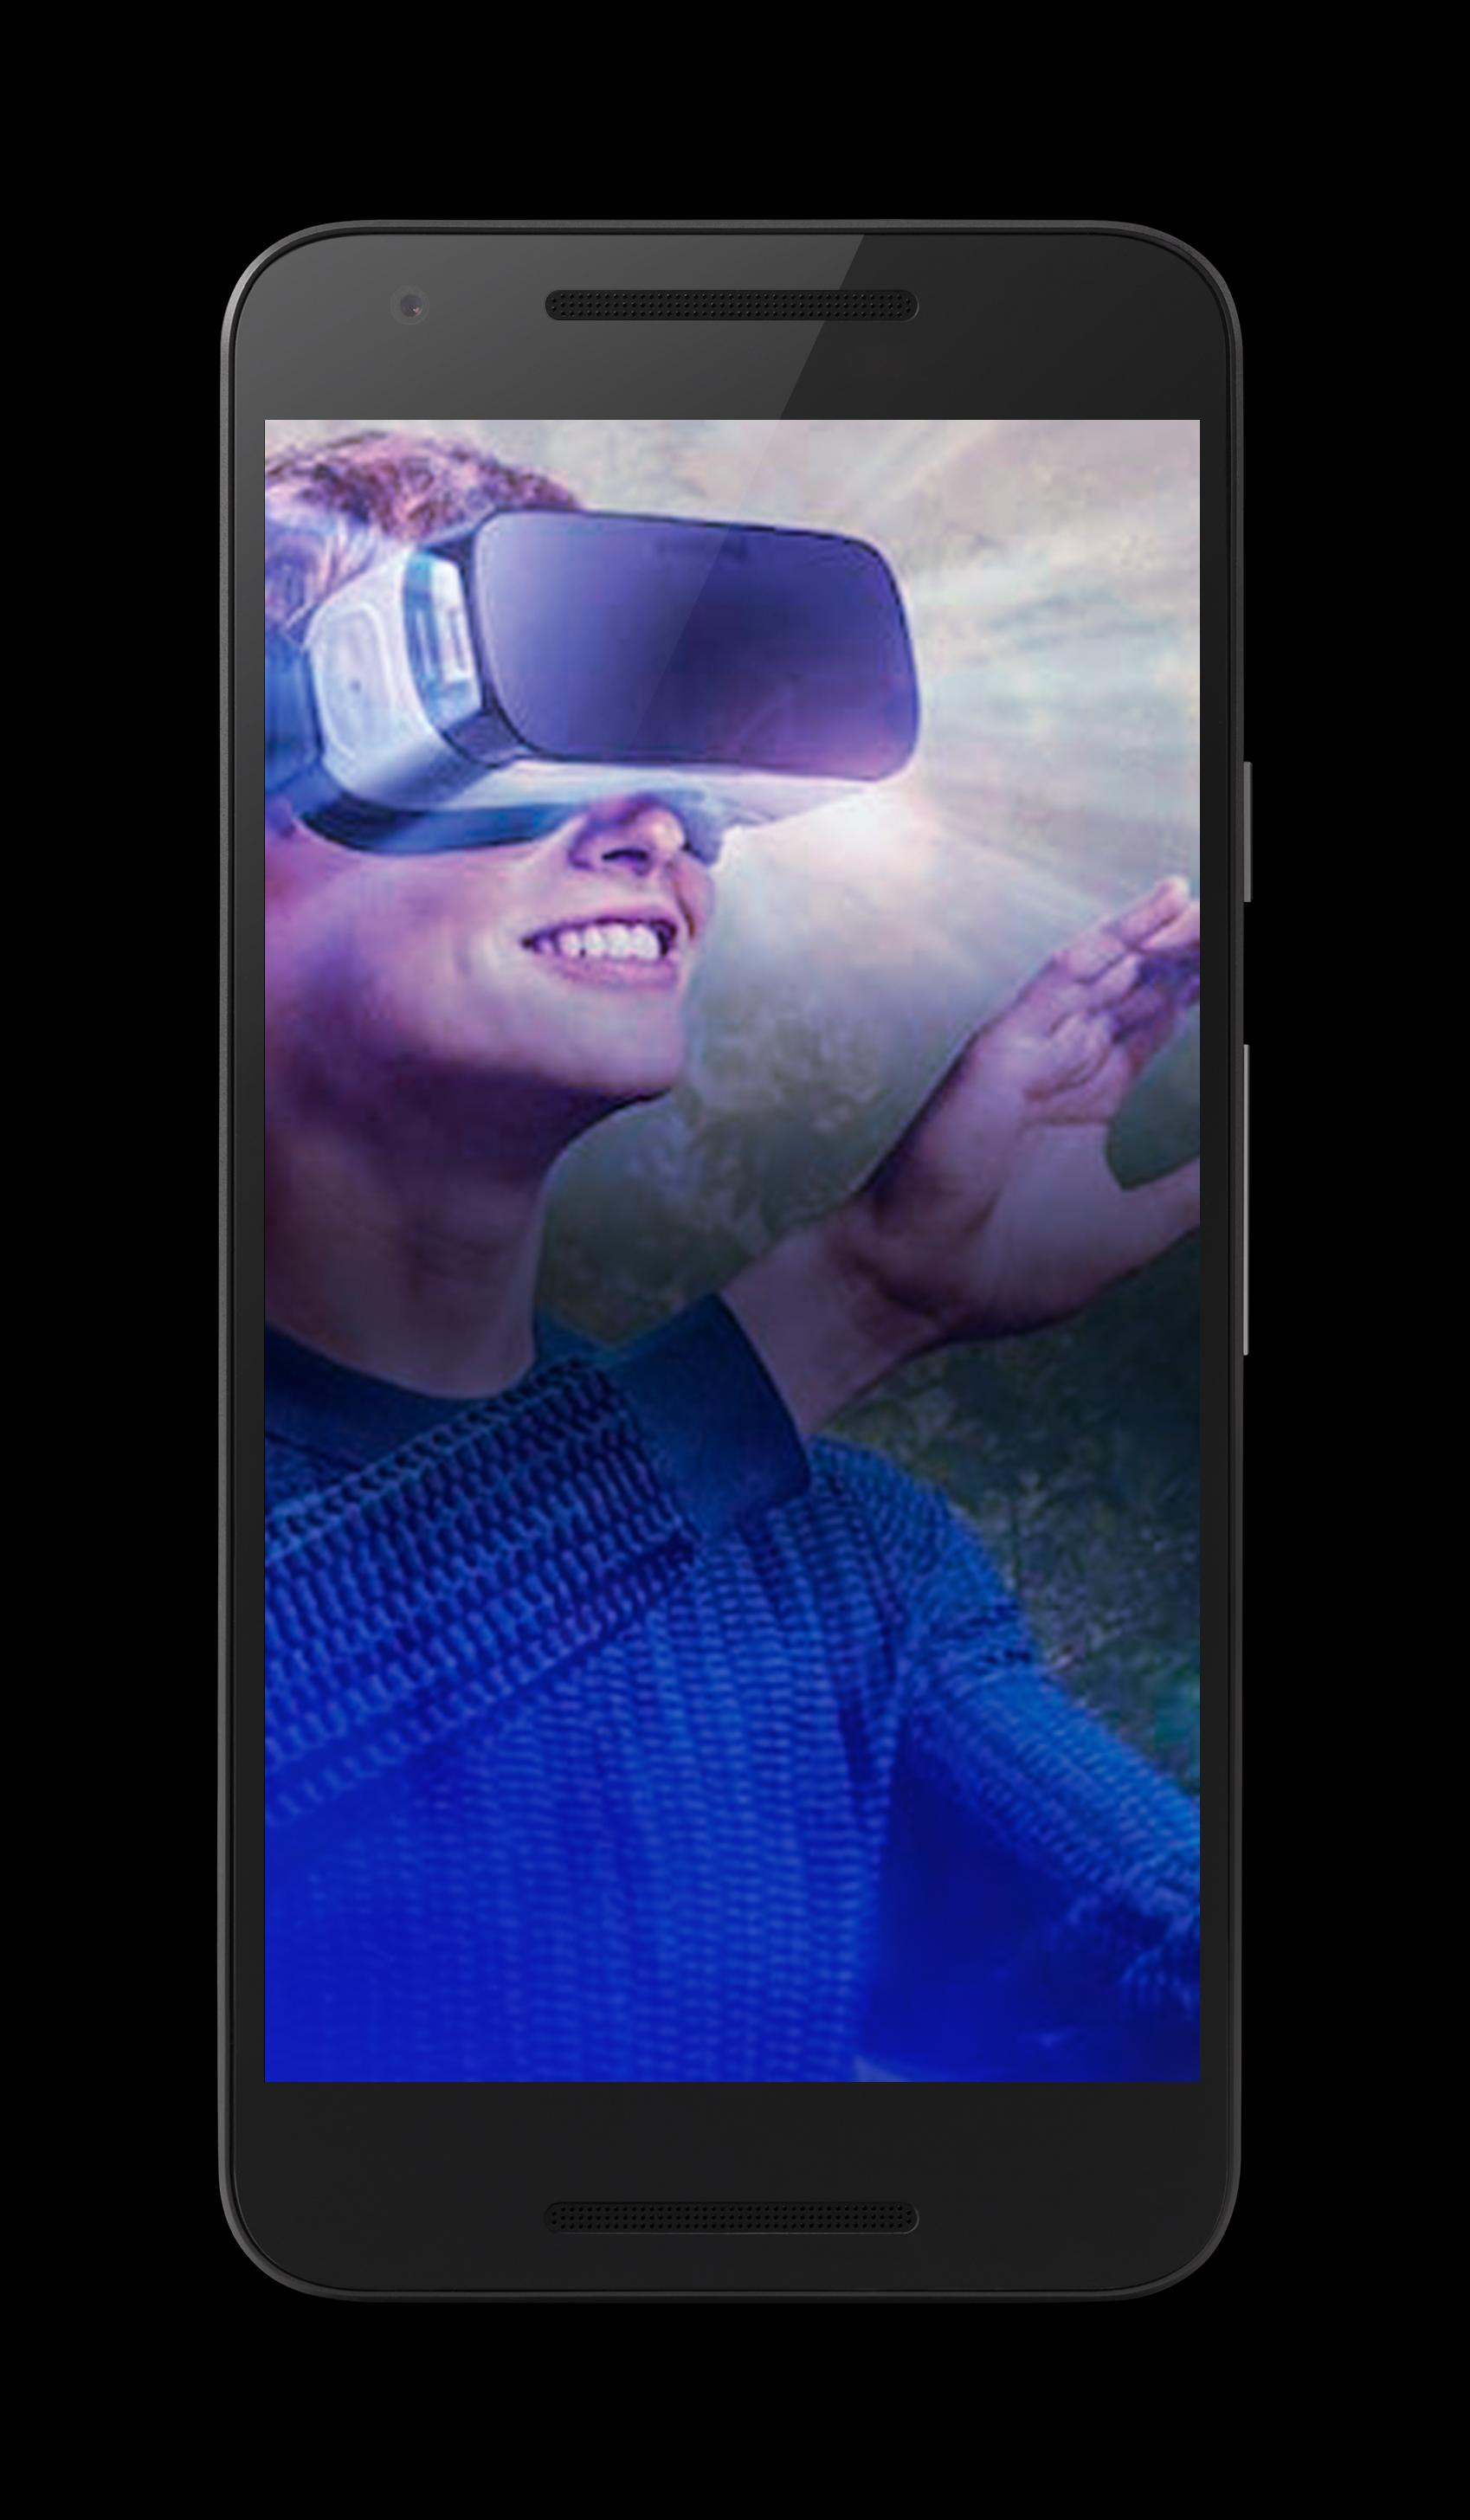 VR Videos Without Gyroscope 3 0 for Android - APK Download